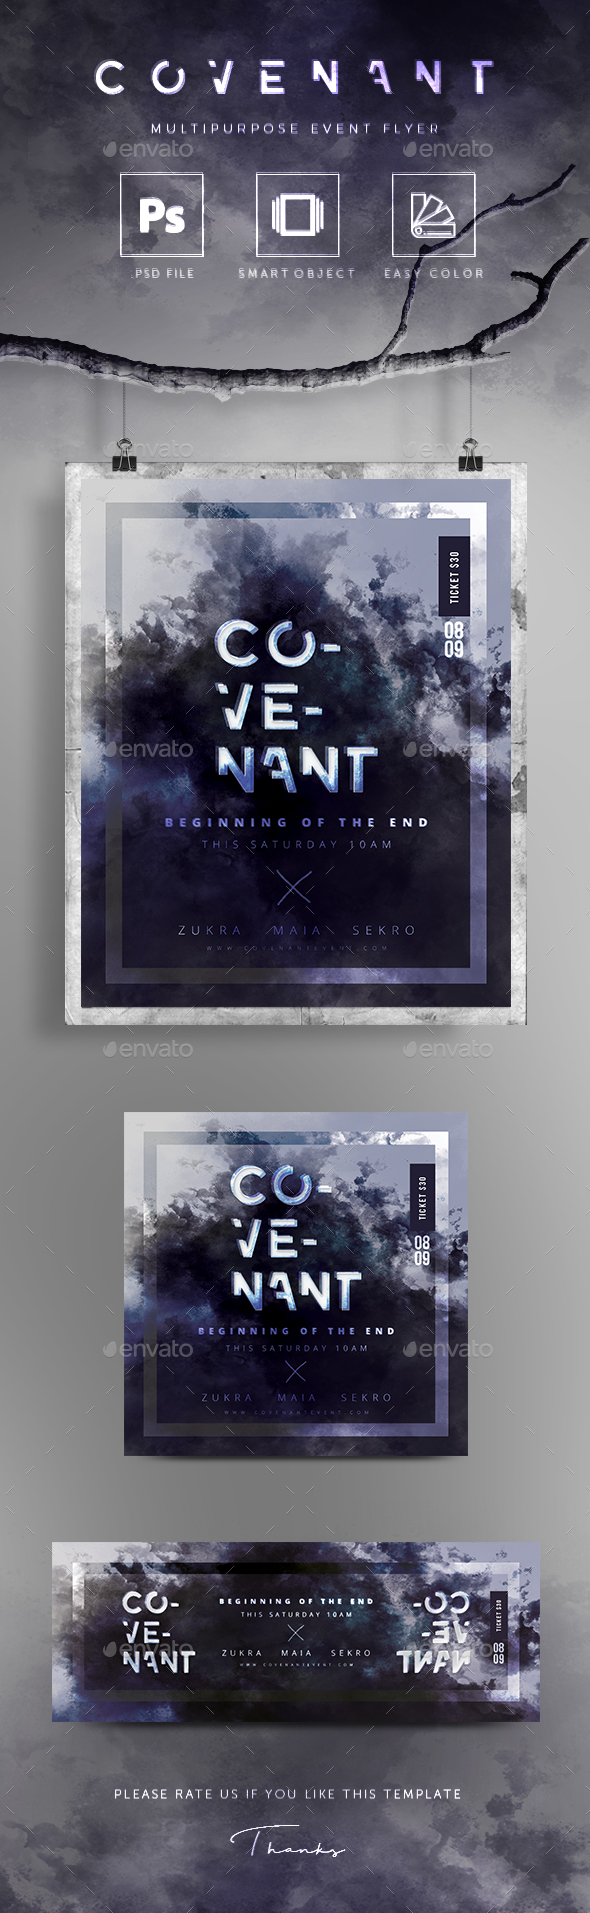 Covenant Poster / Flyer - Events Flyers